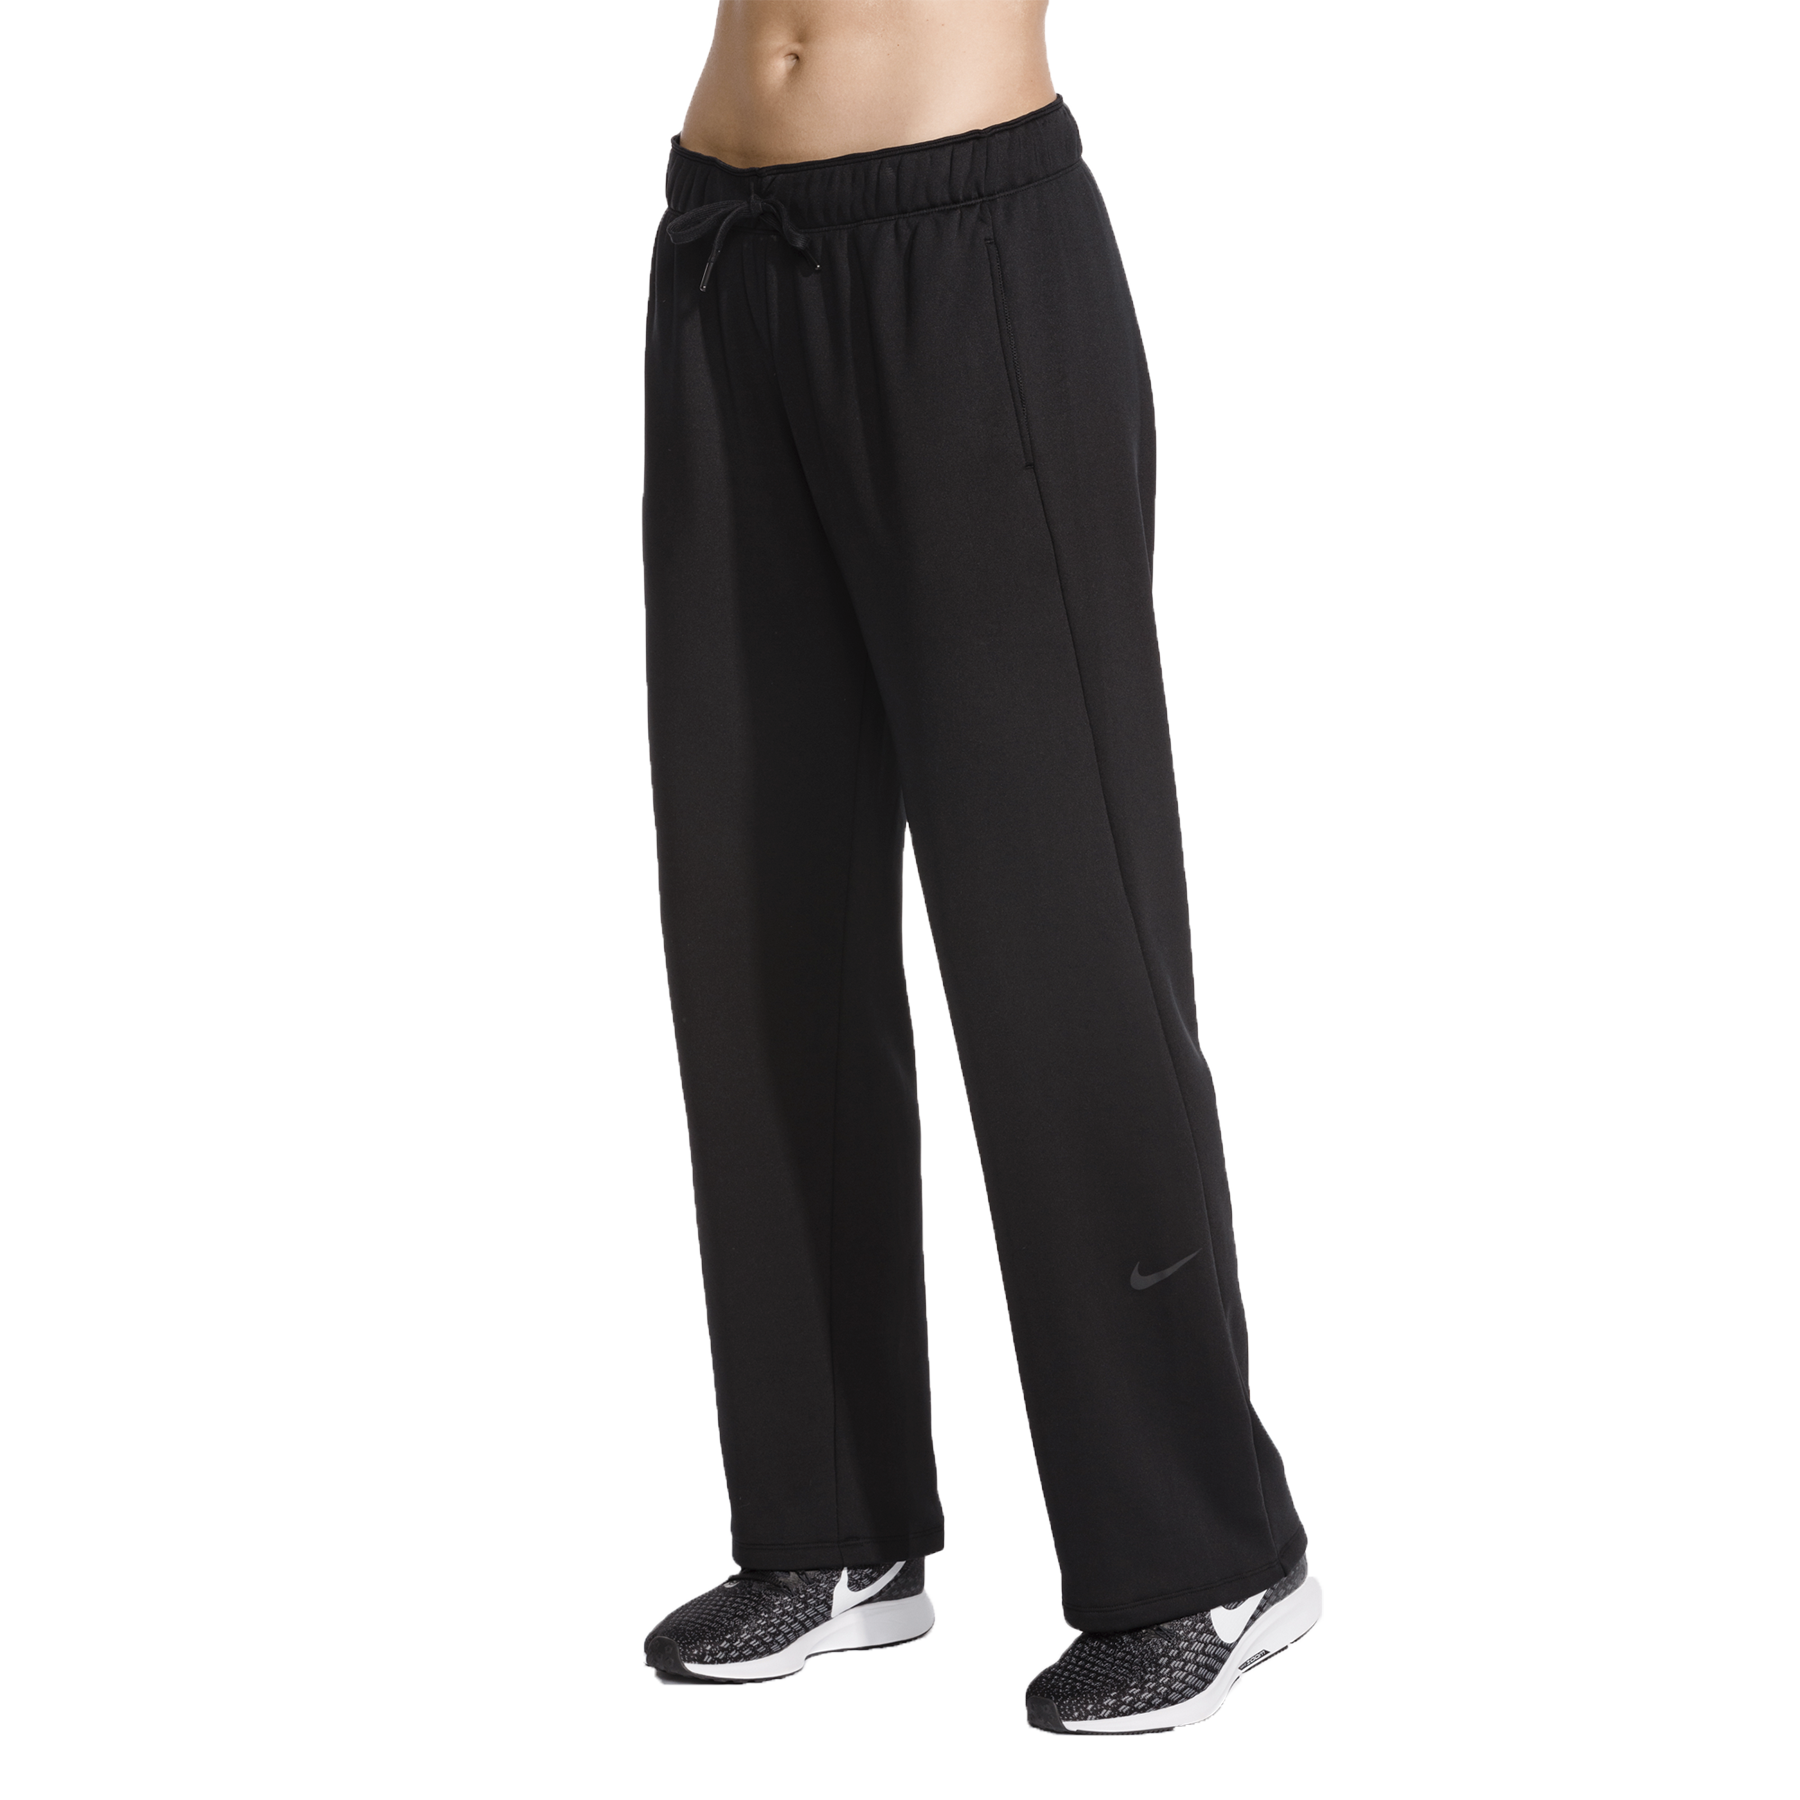 78185fc86049 Nike therma fleece training pants pga tour superstore png 1200x1200 Nike  therma fit pants